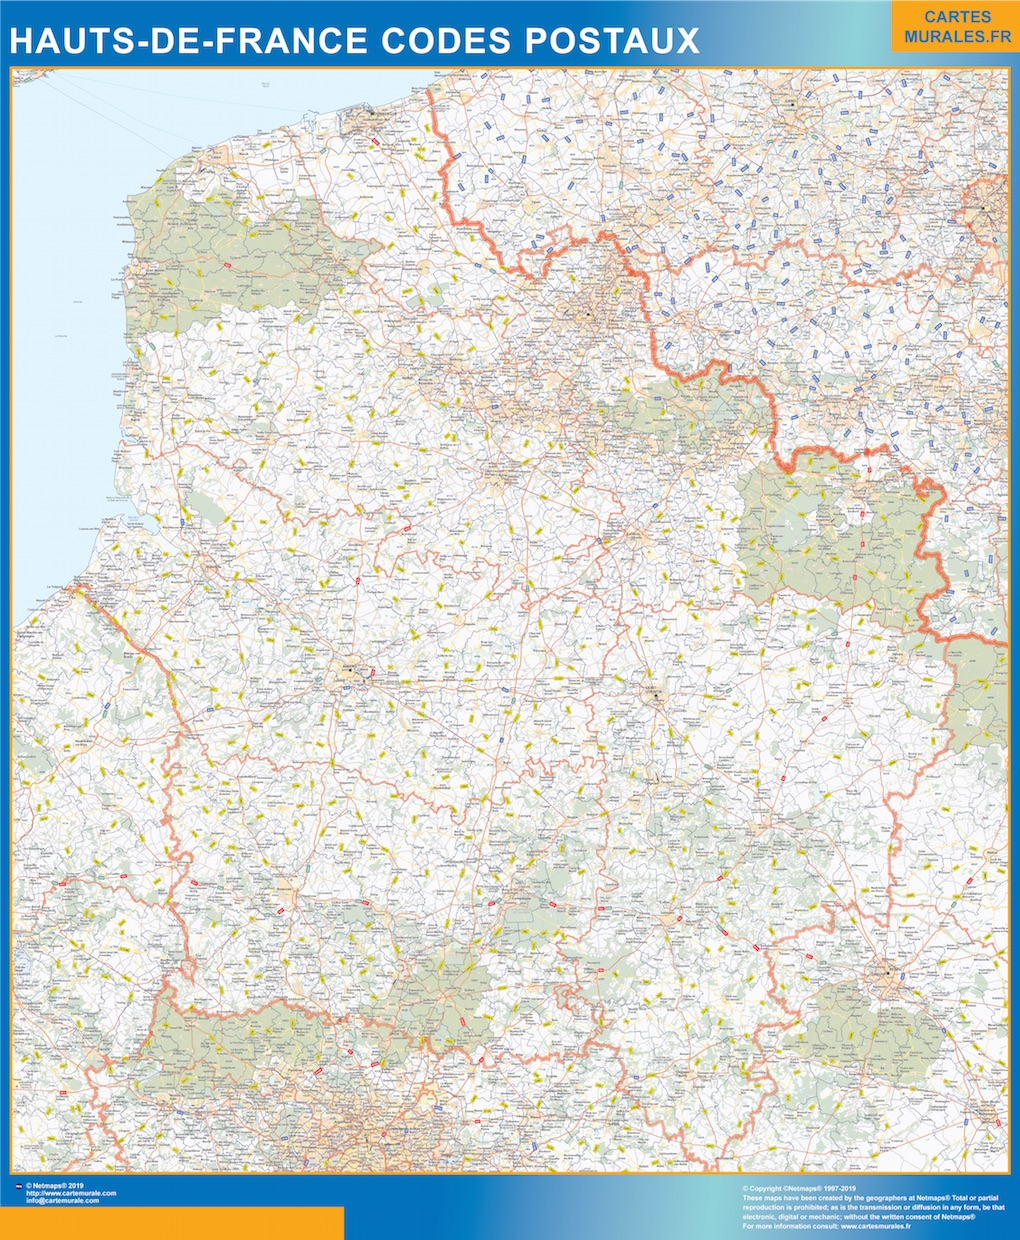 Carte Hauts de France codes postaux